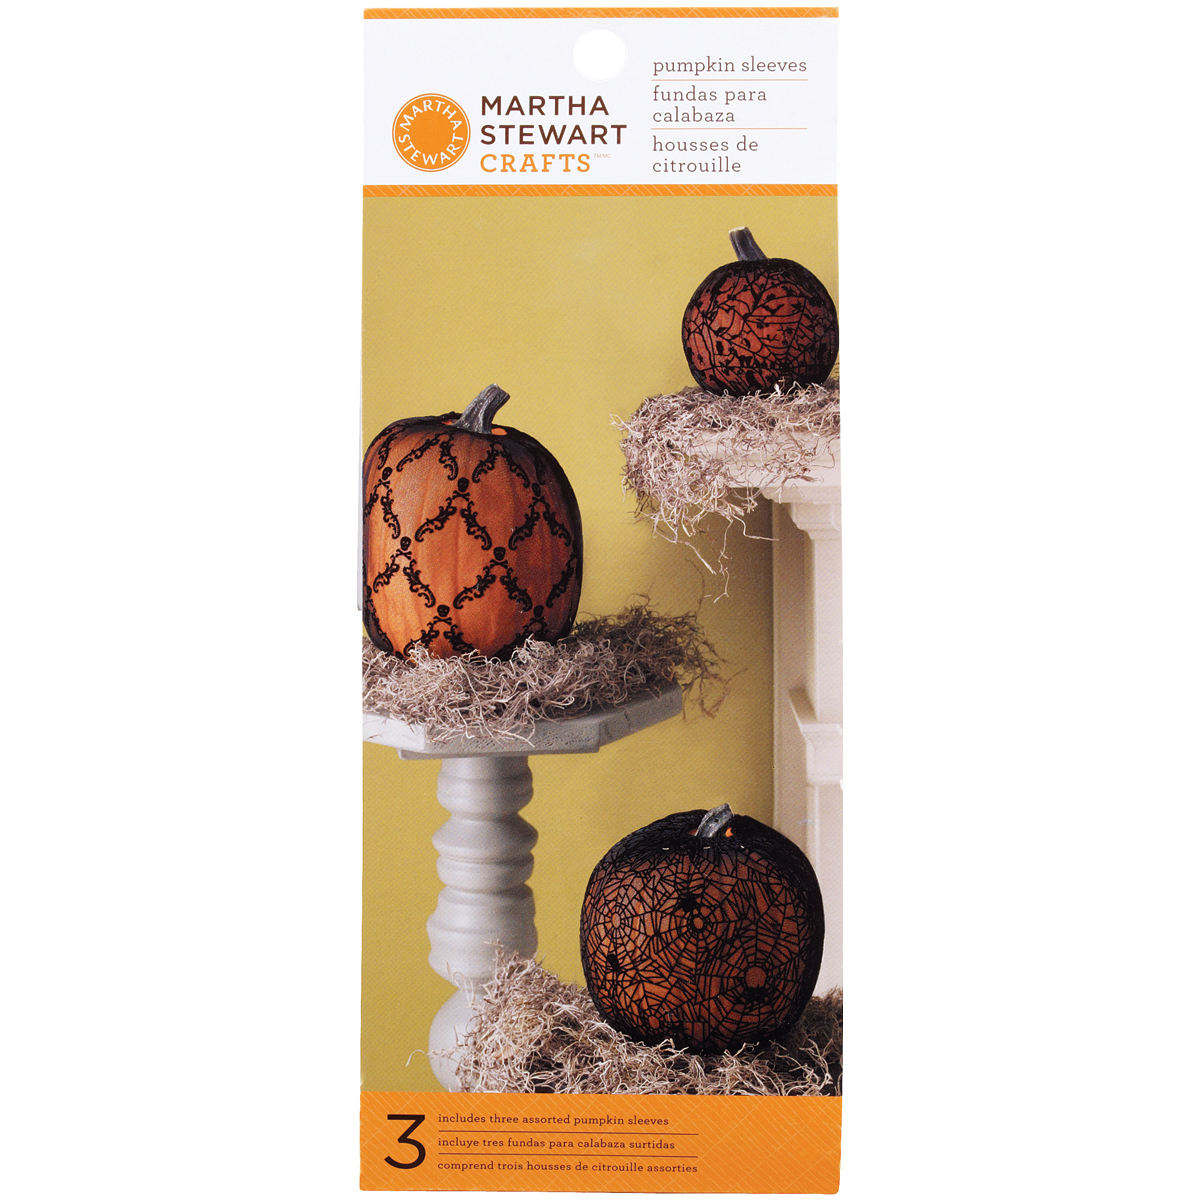 Haunted Pumpkin Sleeves 3/Pkg-Spider/Skull & Crossbones/Damask